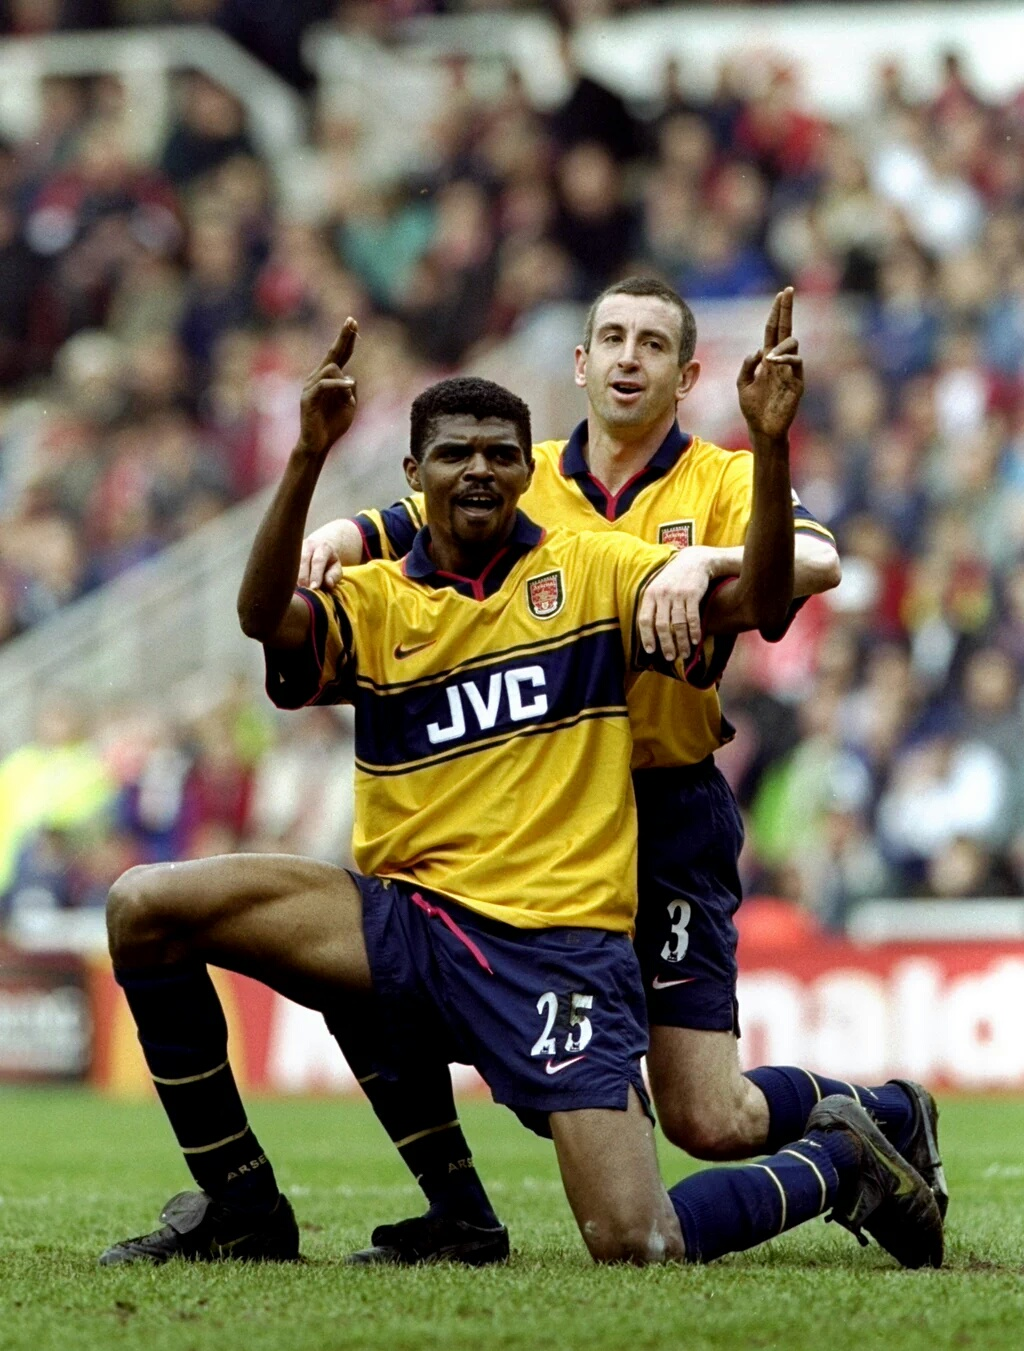 Polifocus Blog 2016 01 10 Have A Model Habcf024sd After Power Outage Last Night The Former Super Eagles Skipper Nwankwo Kanu Joined Arsenal Fc On This Day In 1999 15th Of January 1996